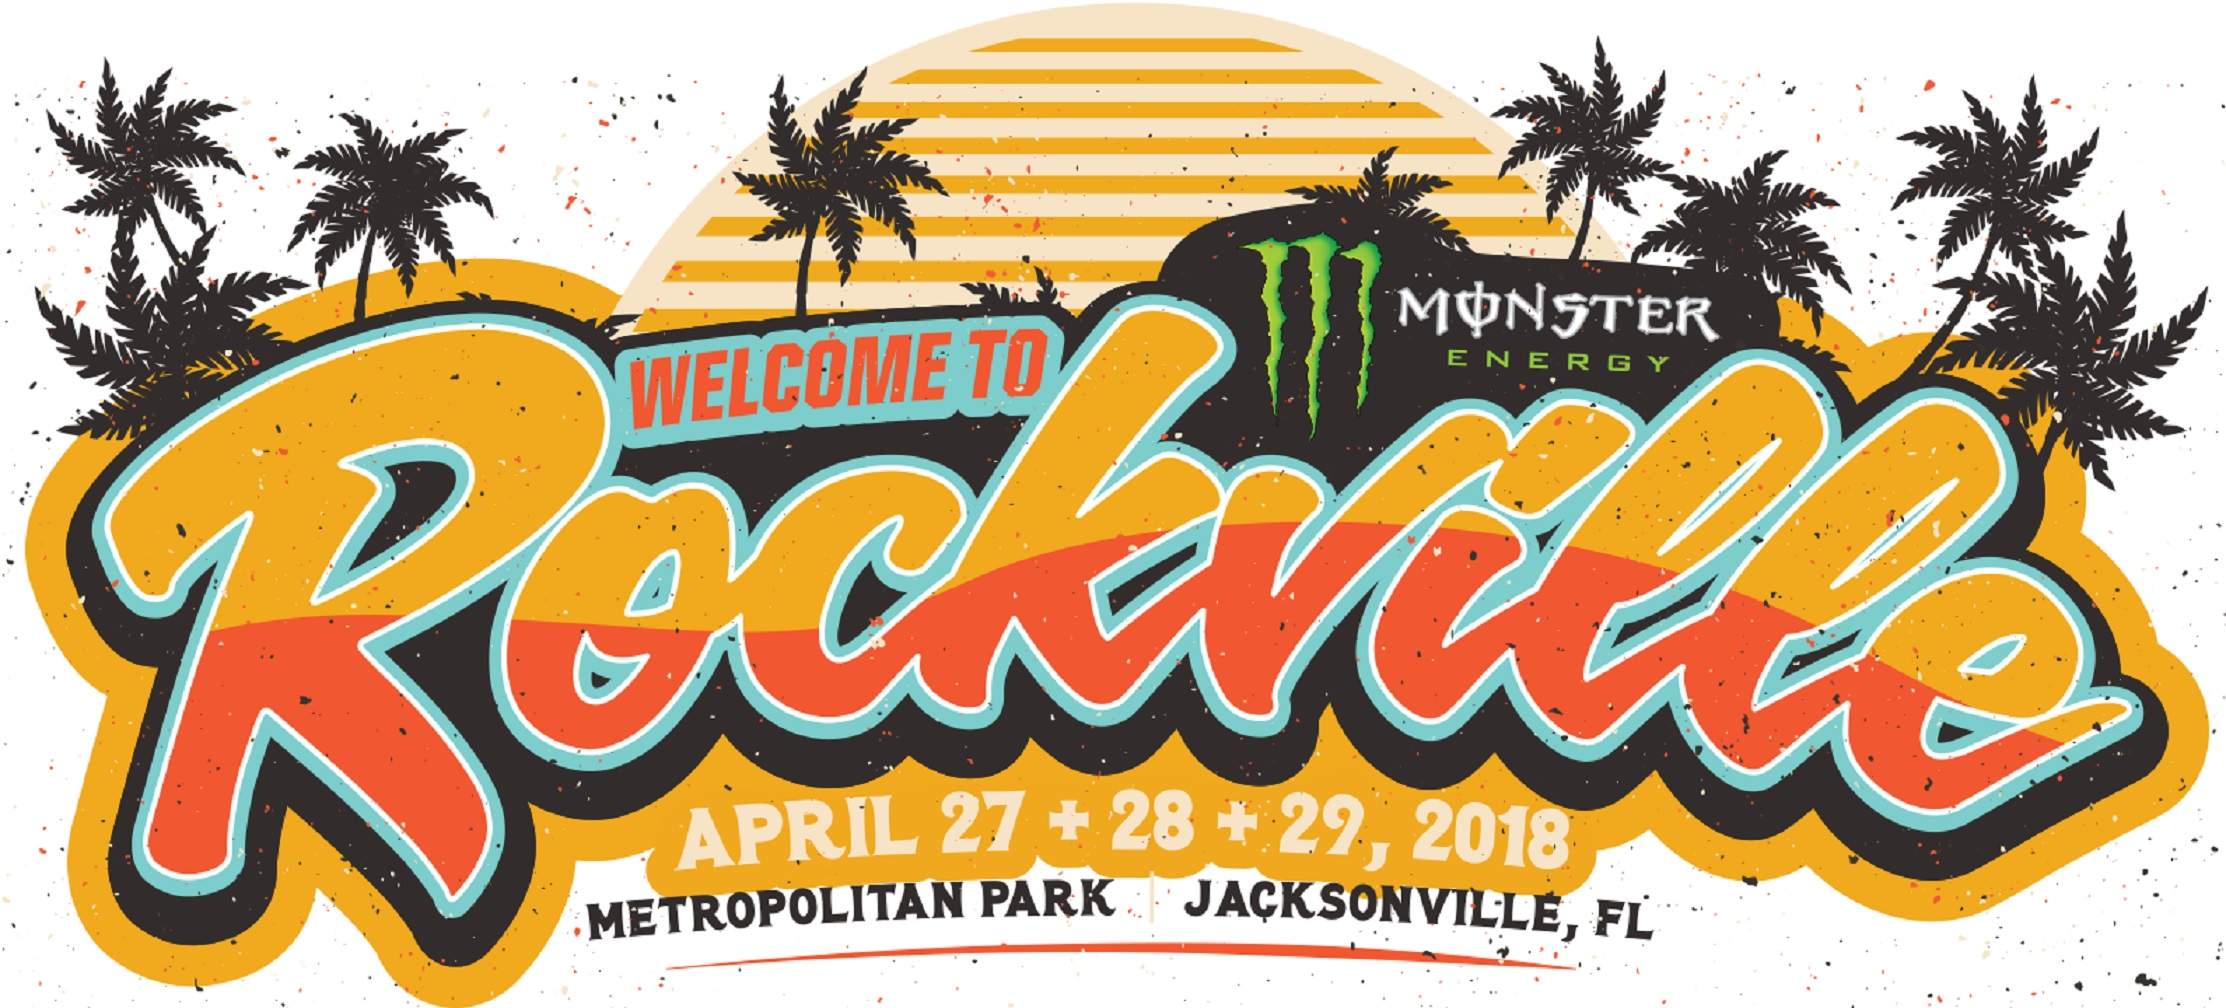 Welcome To Rockville Festival Experiences Announced